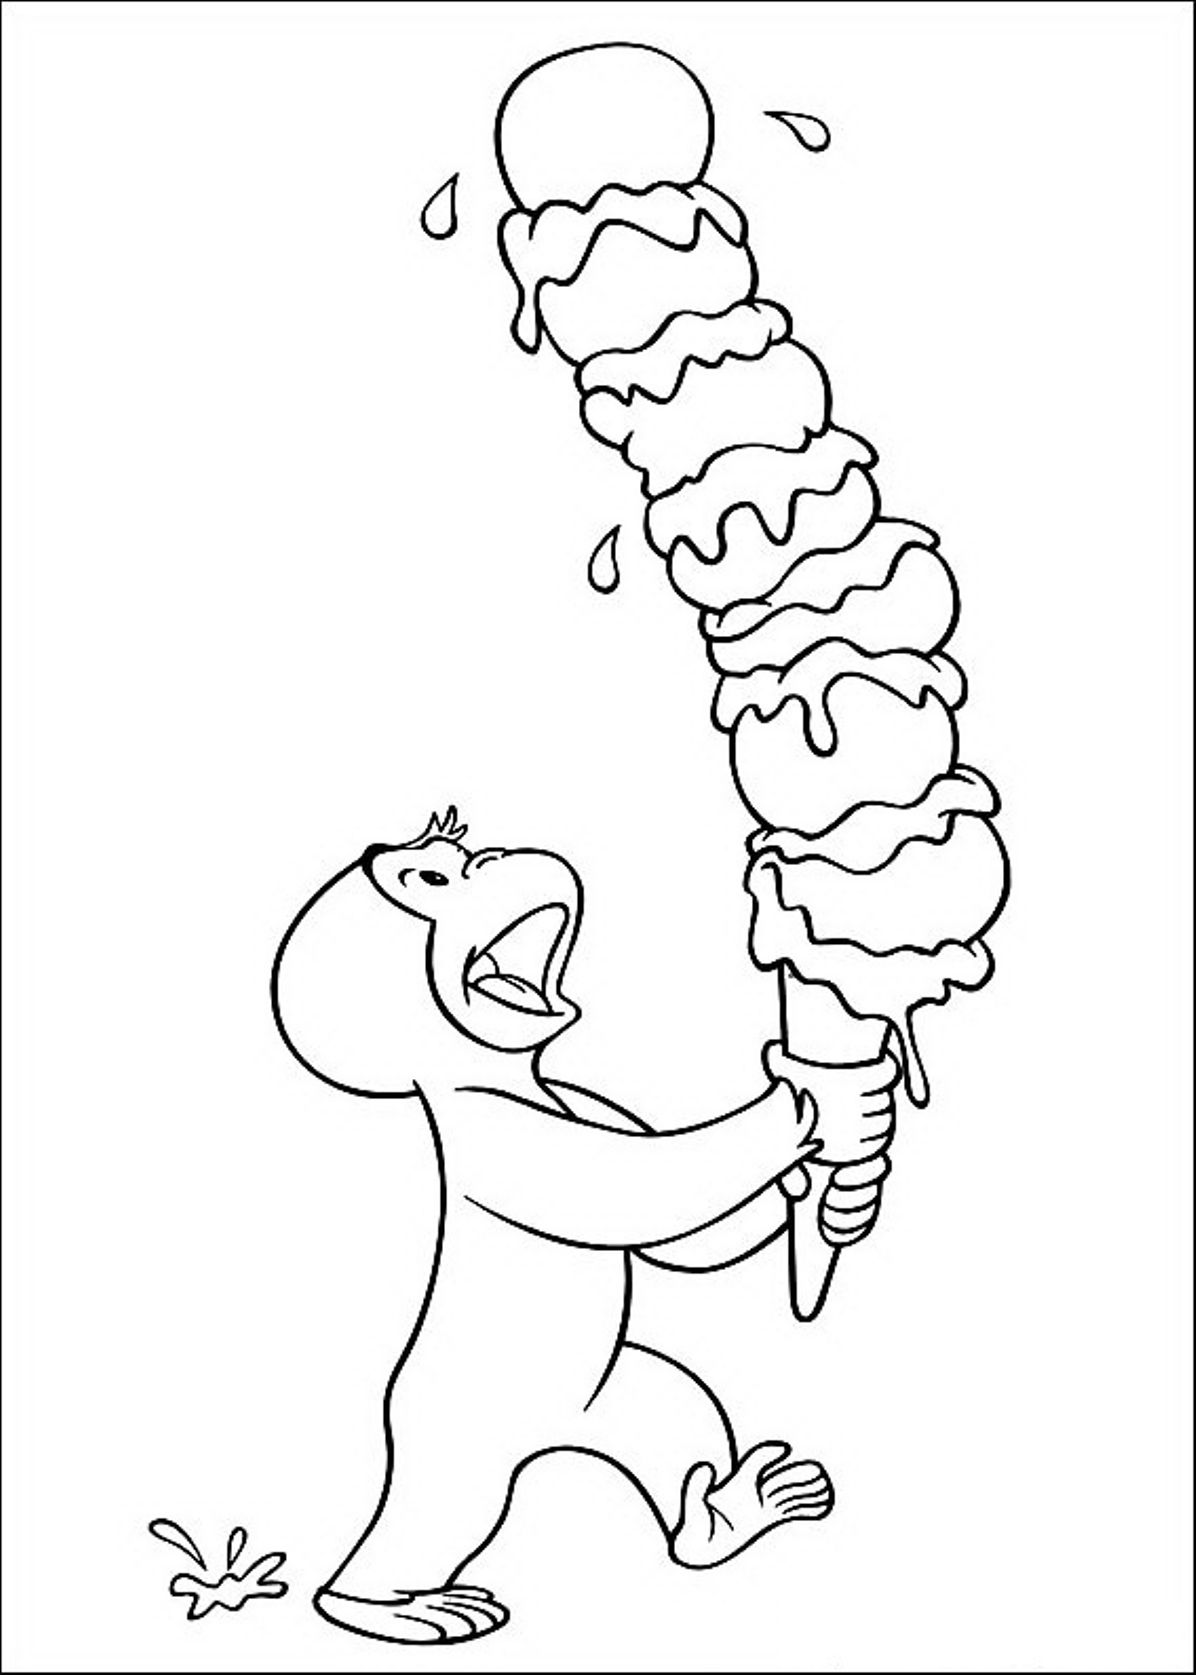 Degree Curious George Coloring Pages To Download And Print For Free ...